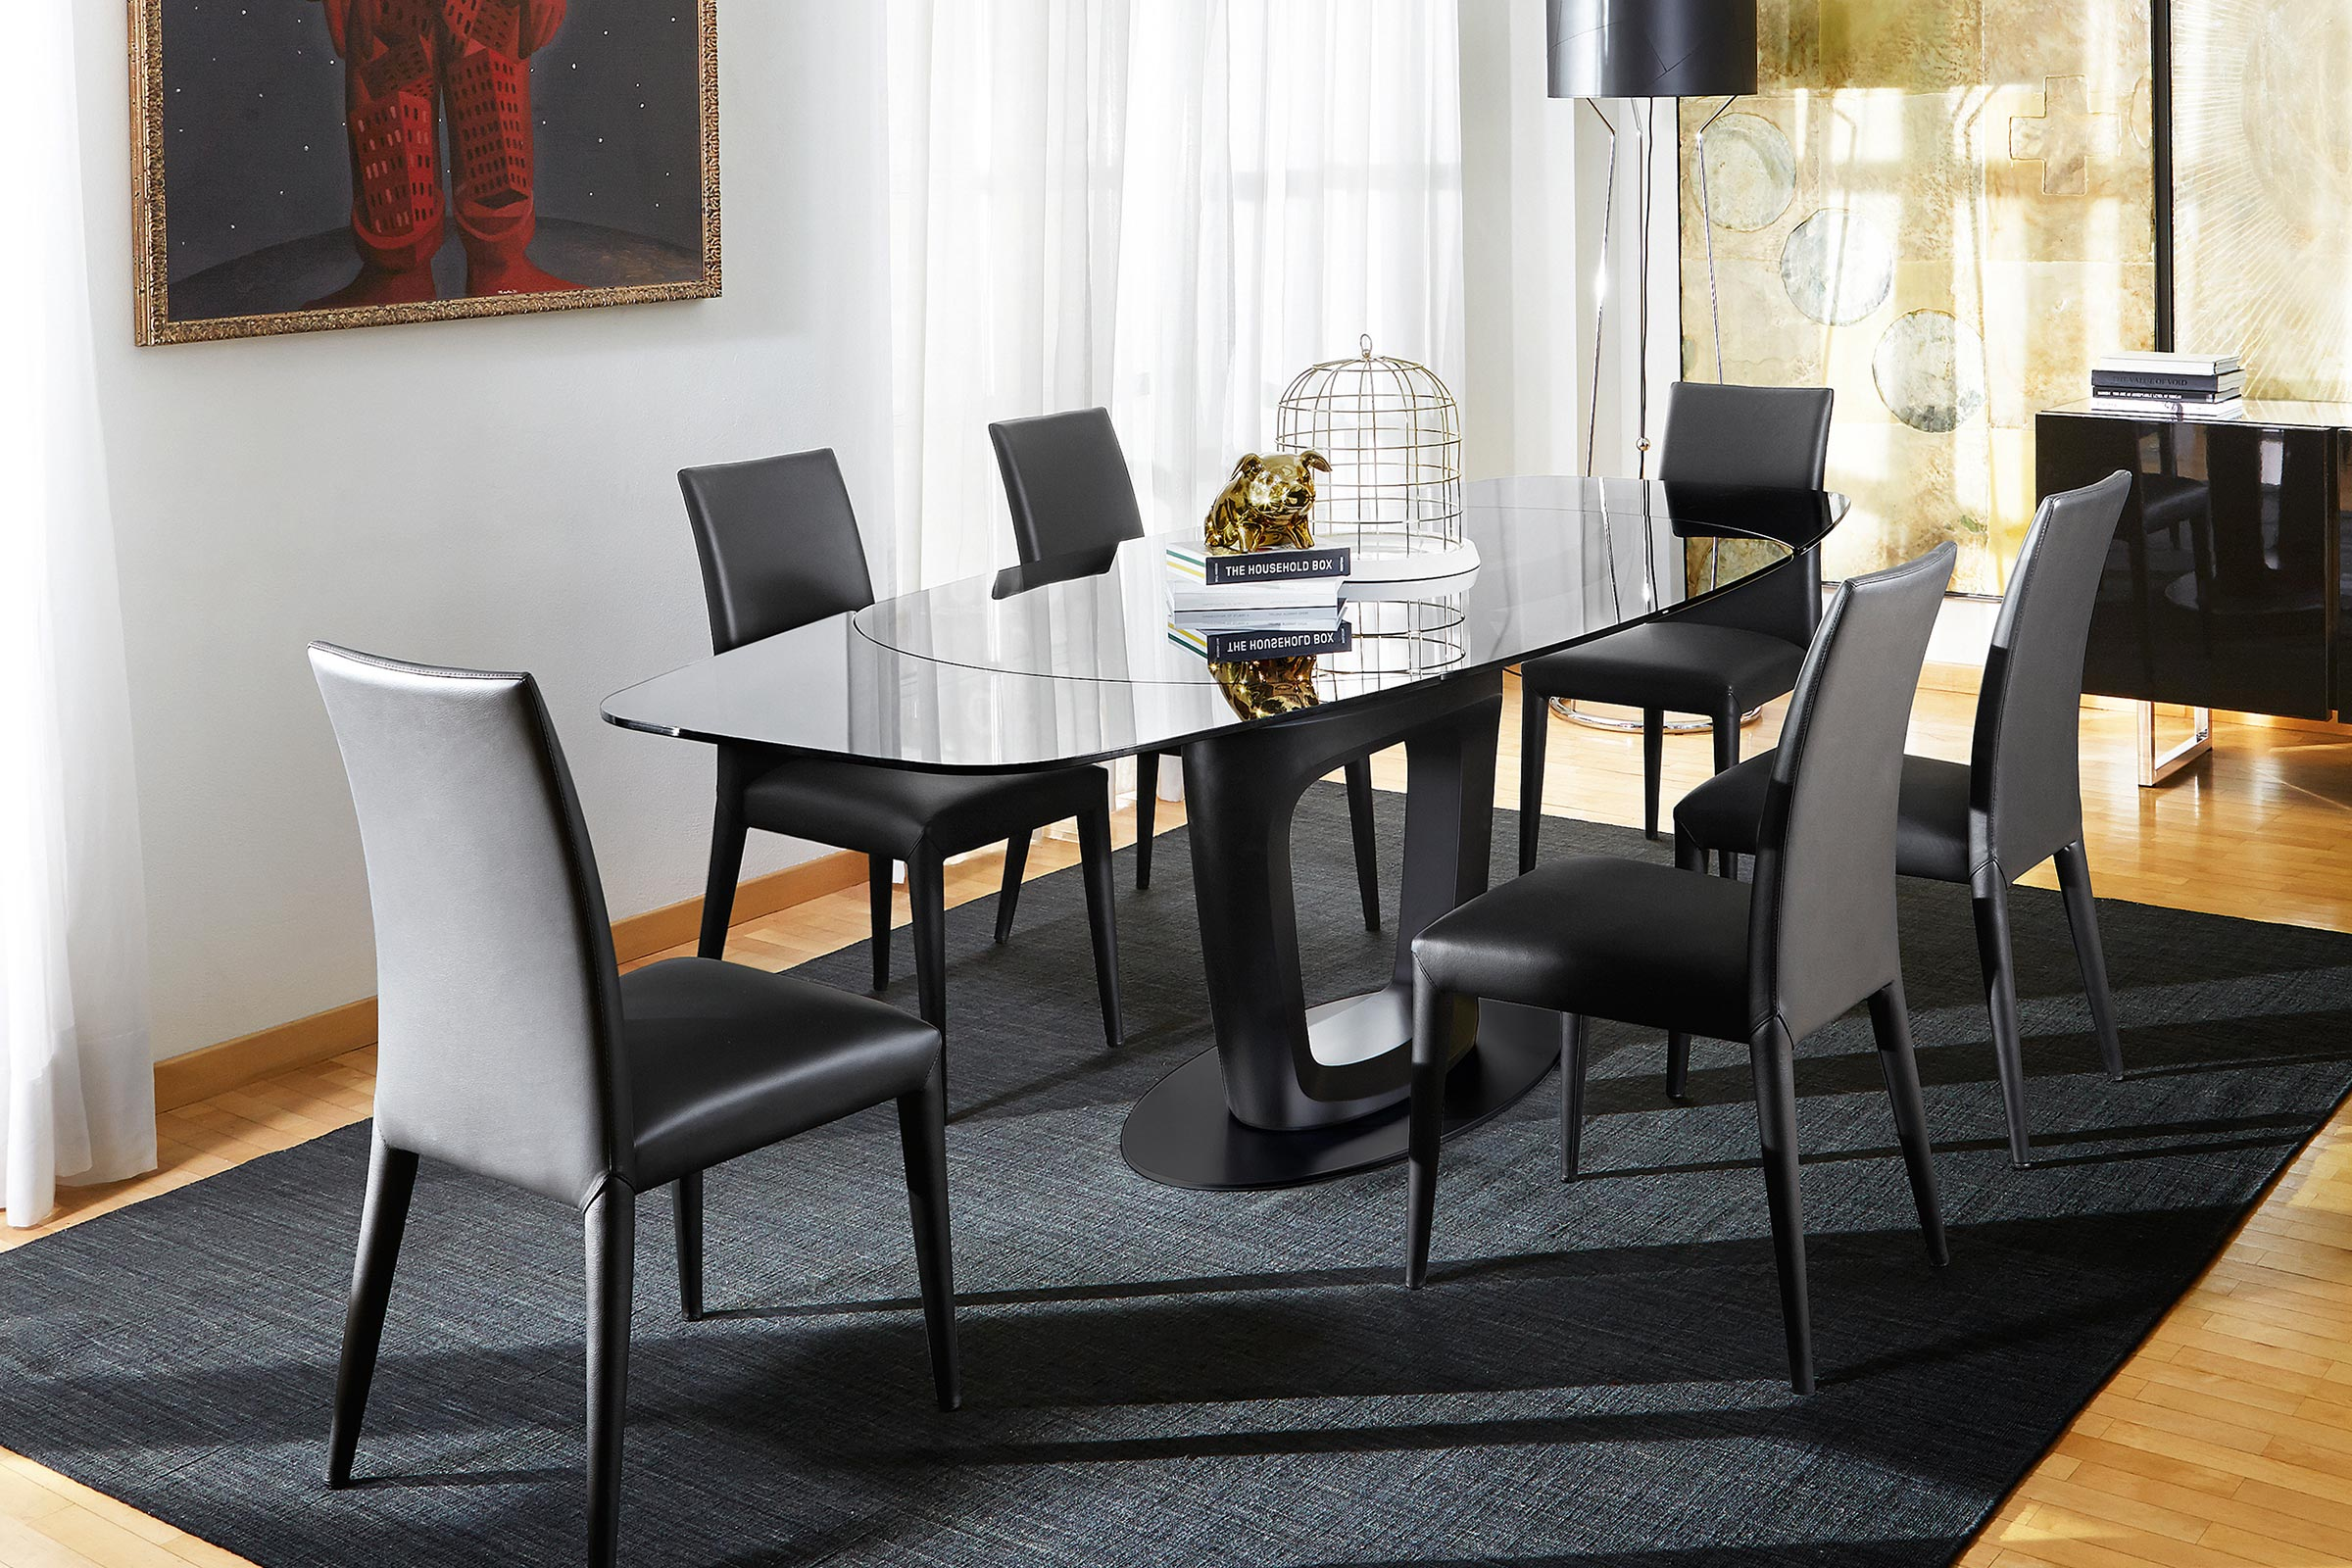 Anais Fully Upholstered Chair Calligaris Boca Raton